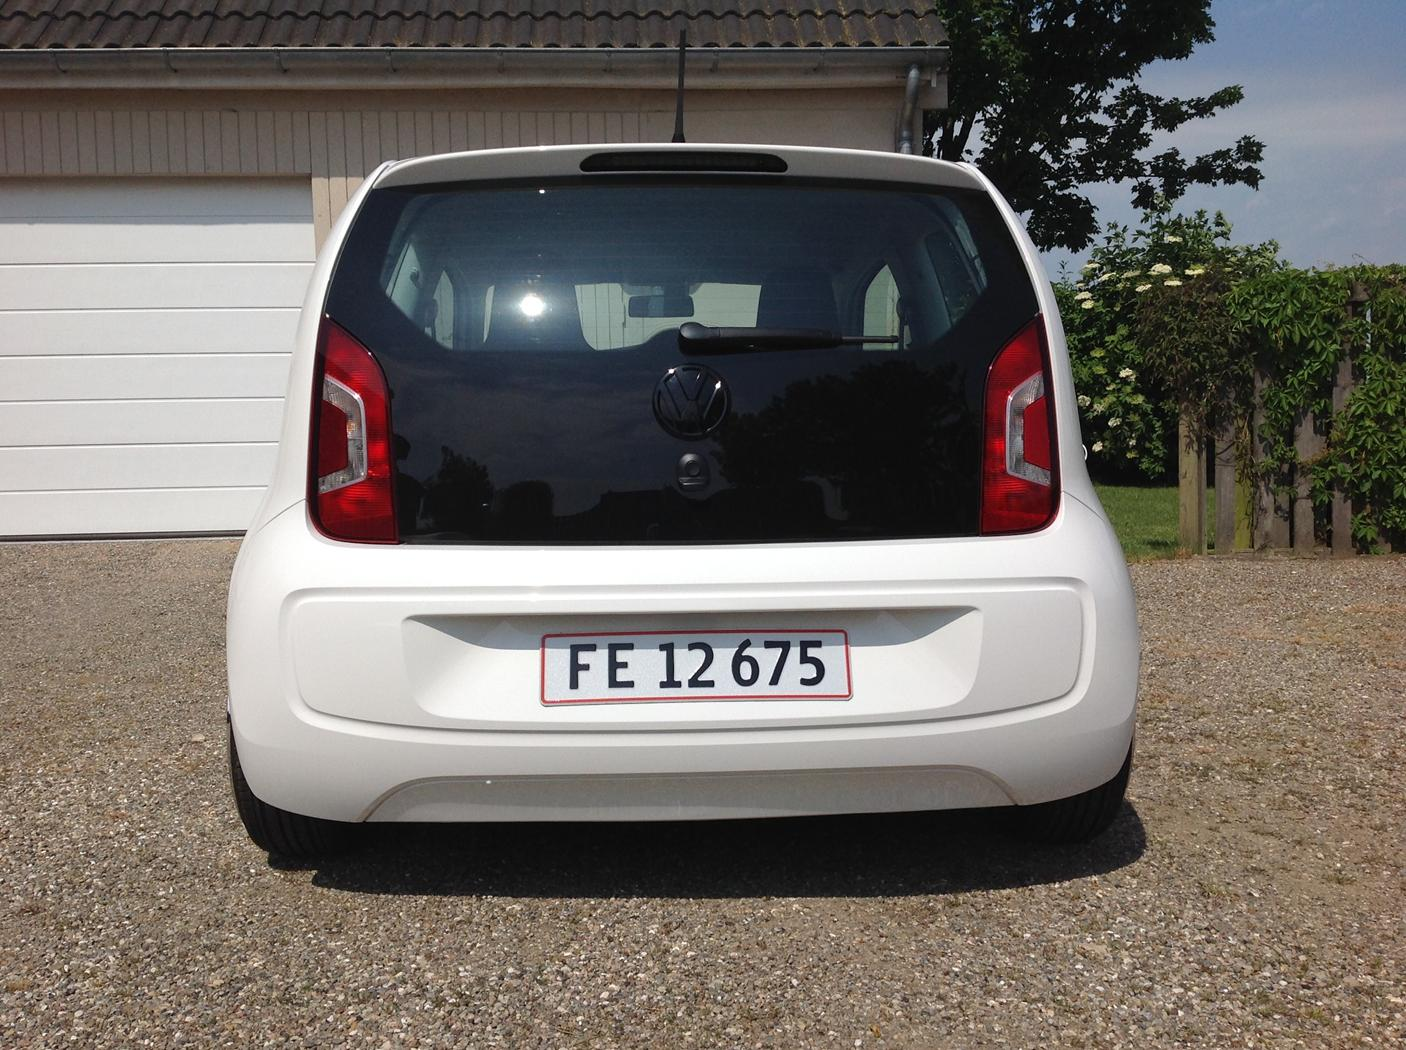 [Imagem: 2925519-vw-up-1_0-60-move-up-bmt]